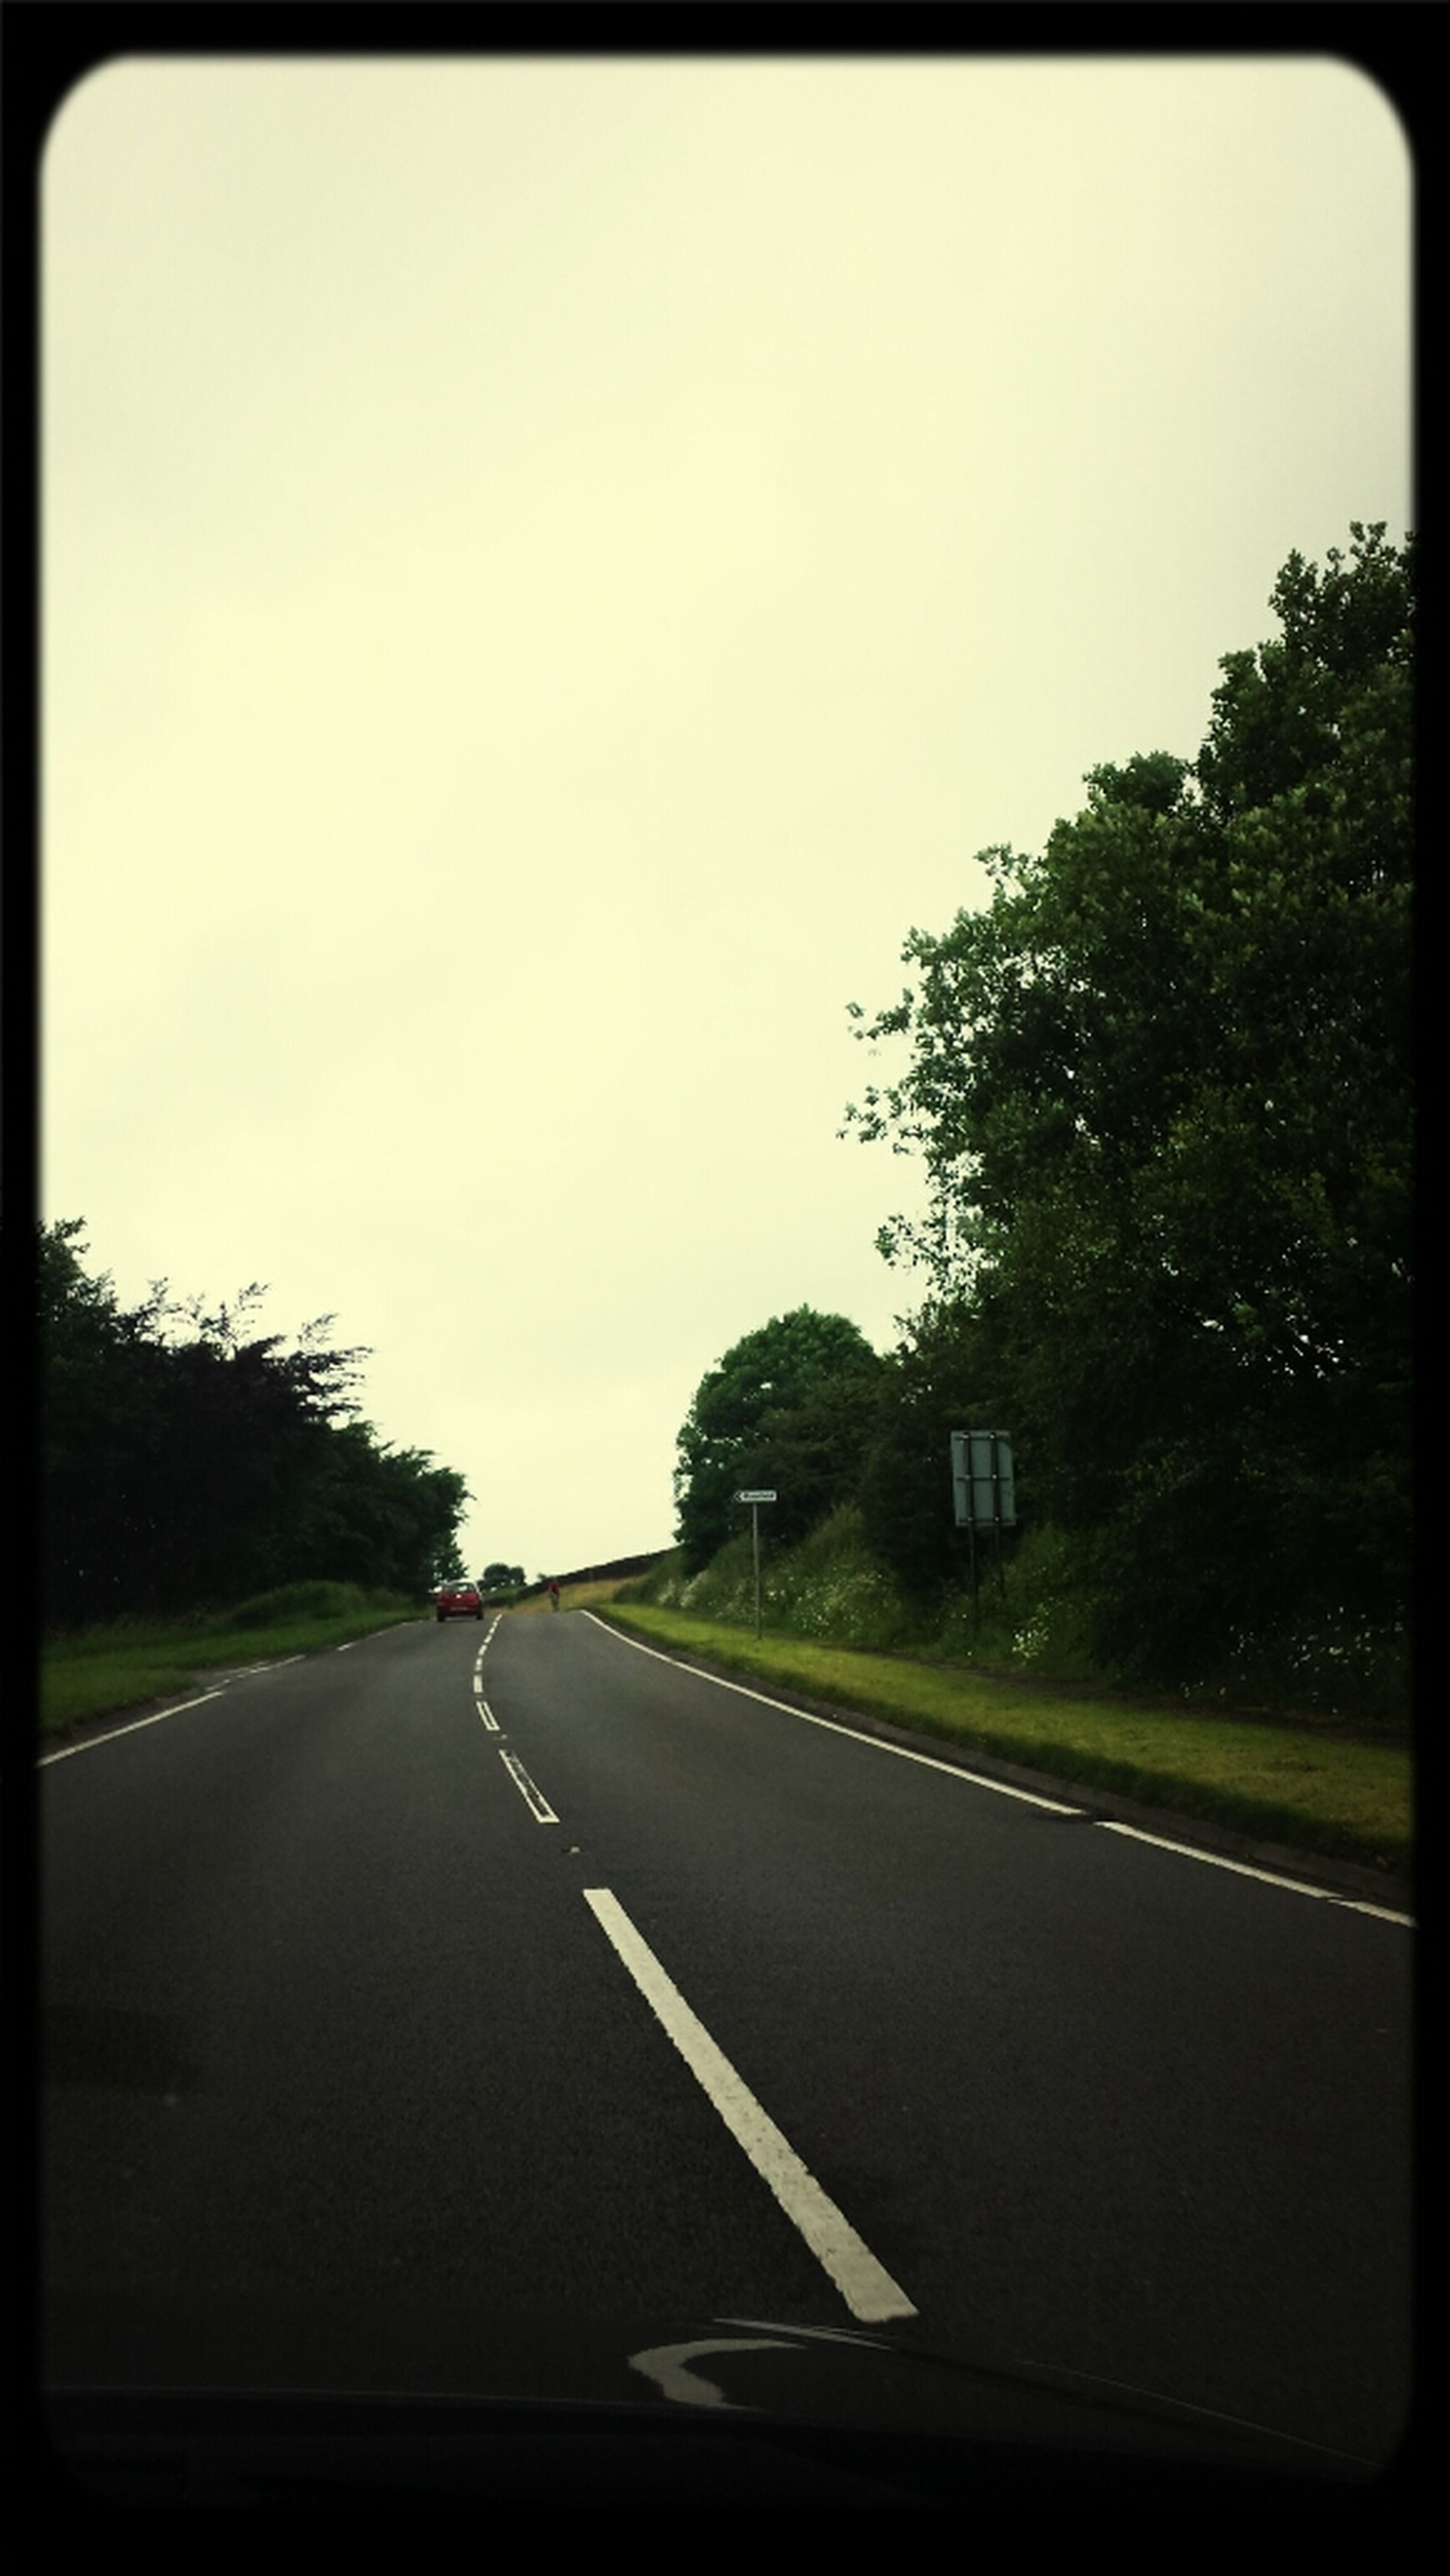 transportation, road, the way forward, road marking, diminishing perspective, tree, country road, vanishing point, car, transfer print, windshield, clear sky, sky, car point of view, mode of transport, asphalt, car interior, auto post production filter, empty, land vehicle